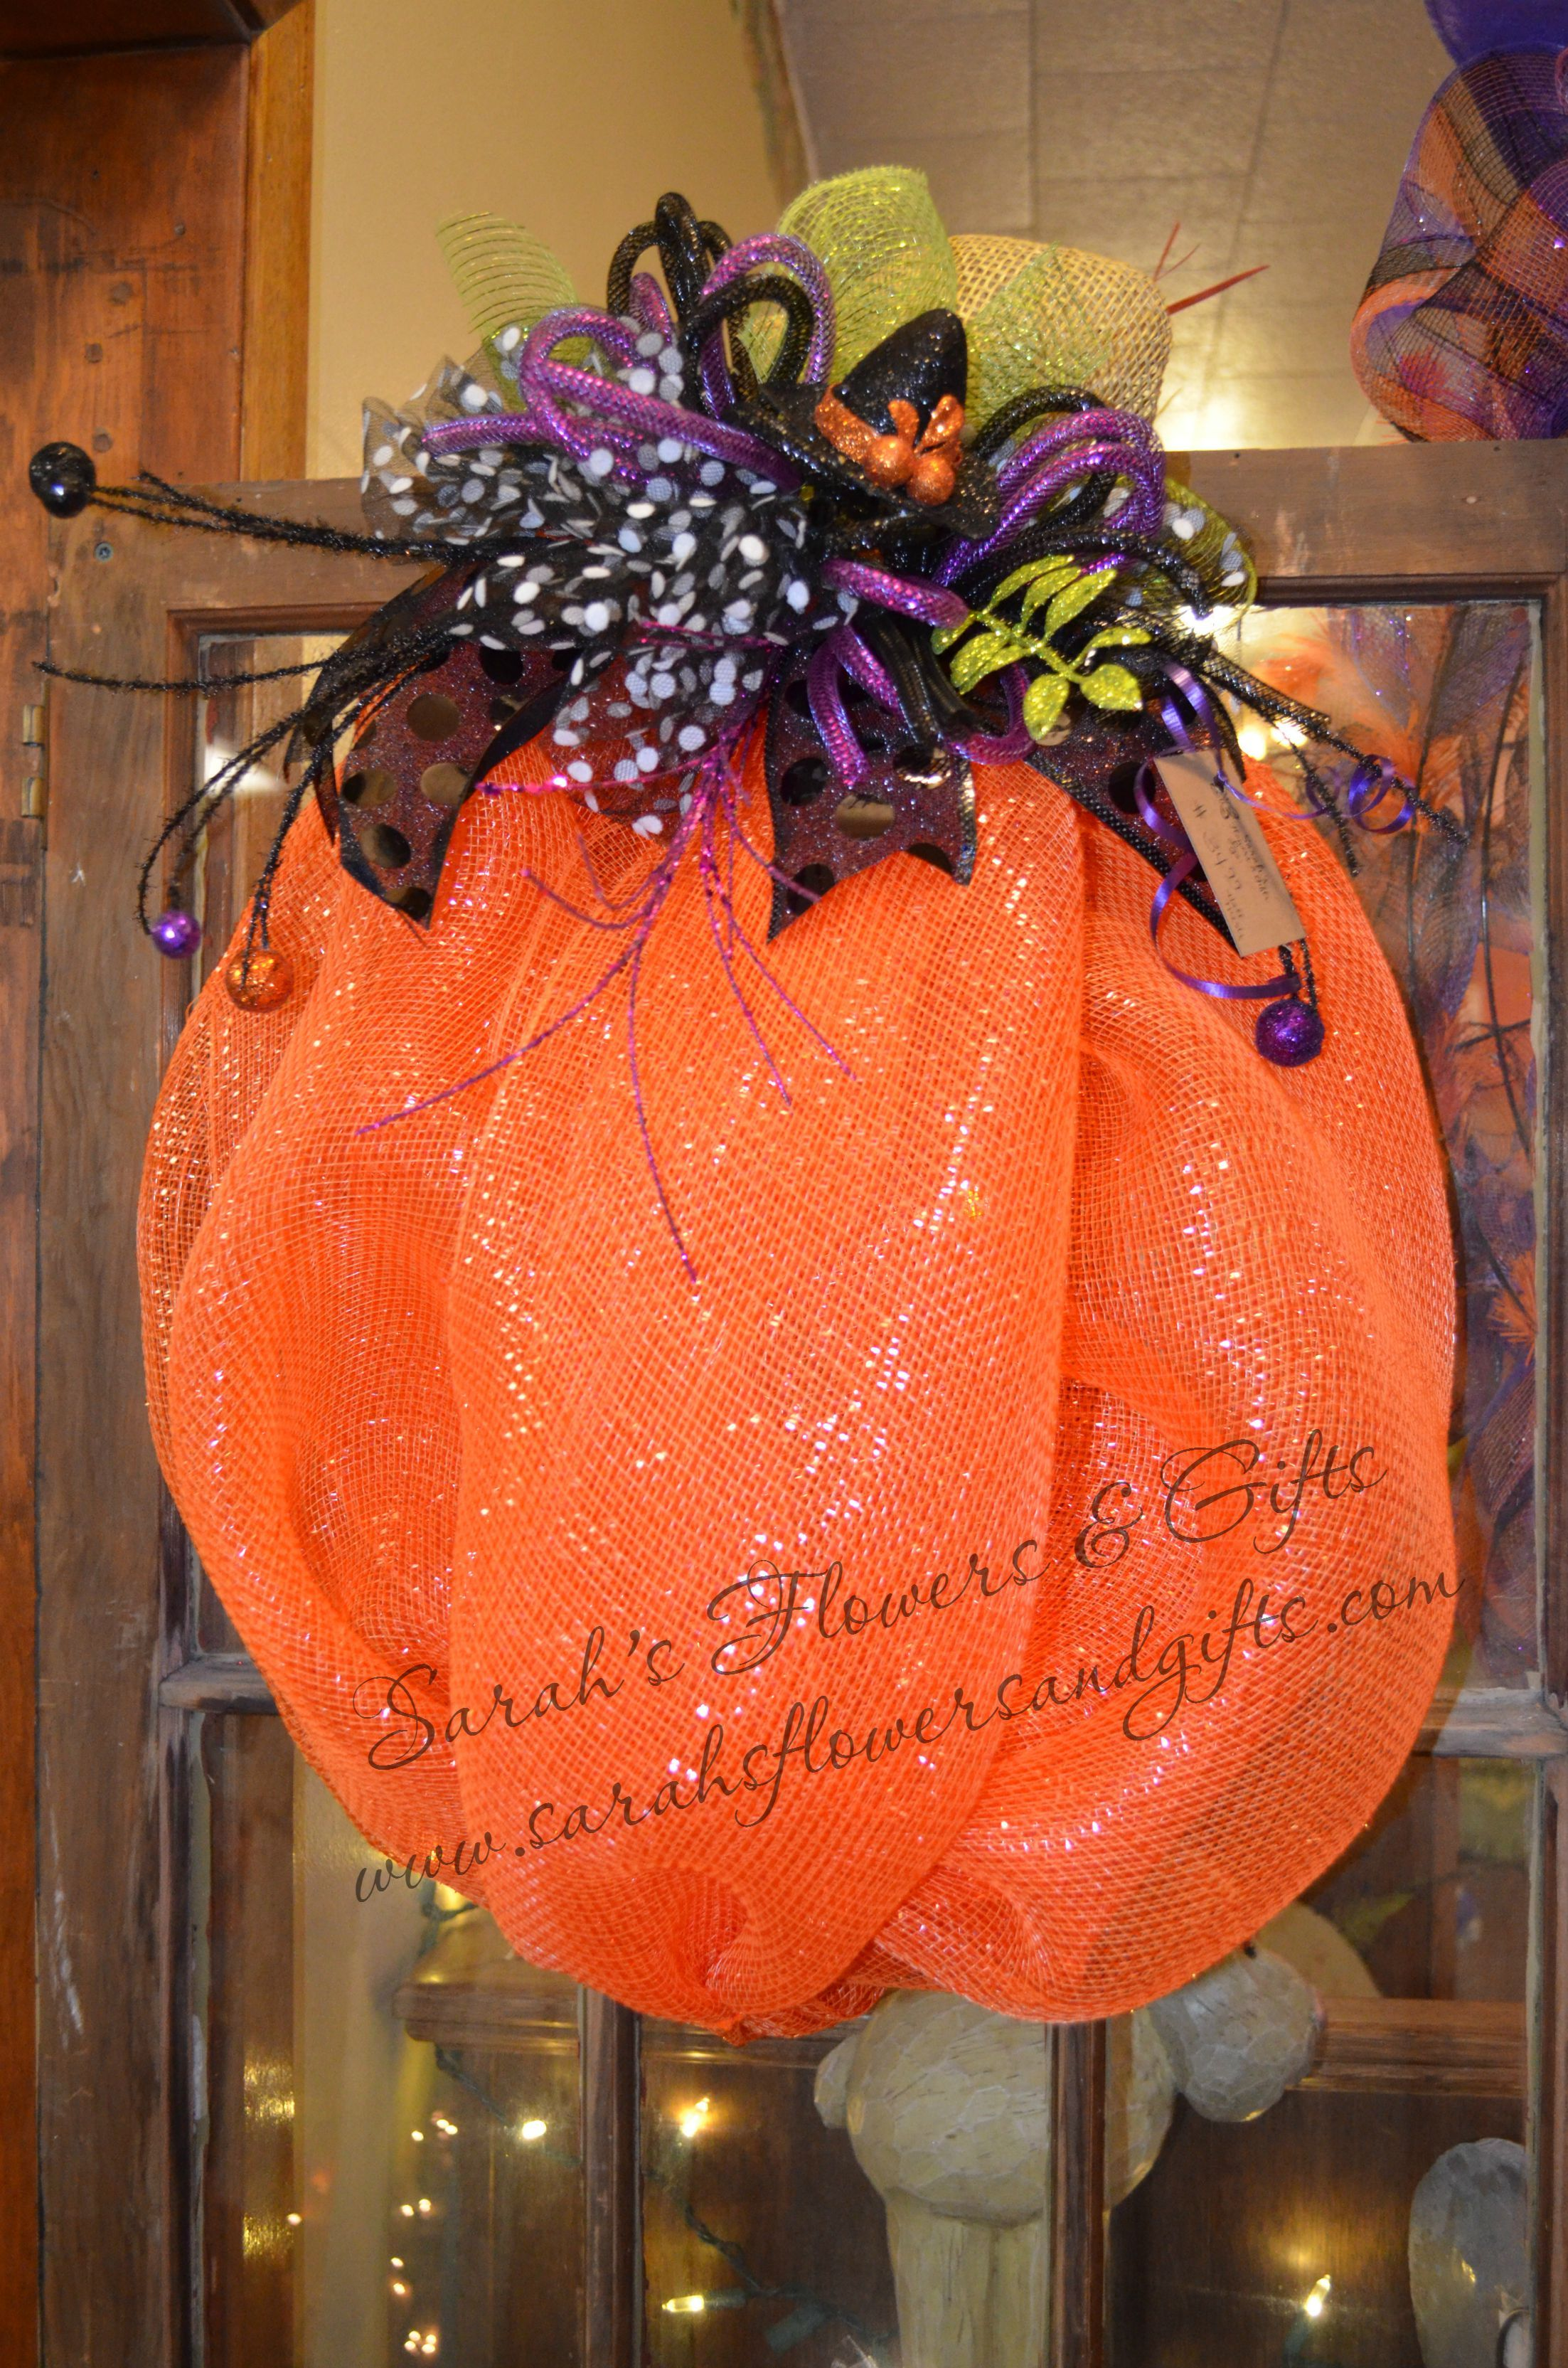 Spooktacular Pumpkin wreath for your front door or home! Handmade at Sarah's Flowers & Gifts 102 Legion Street Manchester Iowa www.sarahsflowersandgifts.com Find us on Facebook!!!